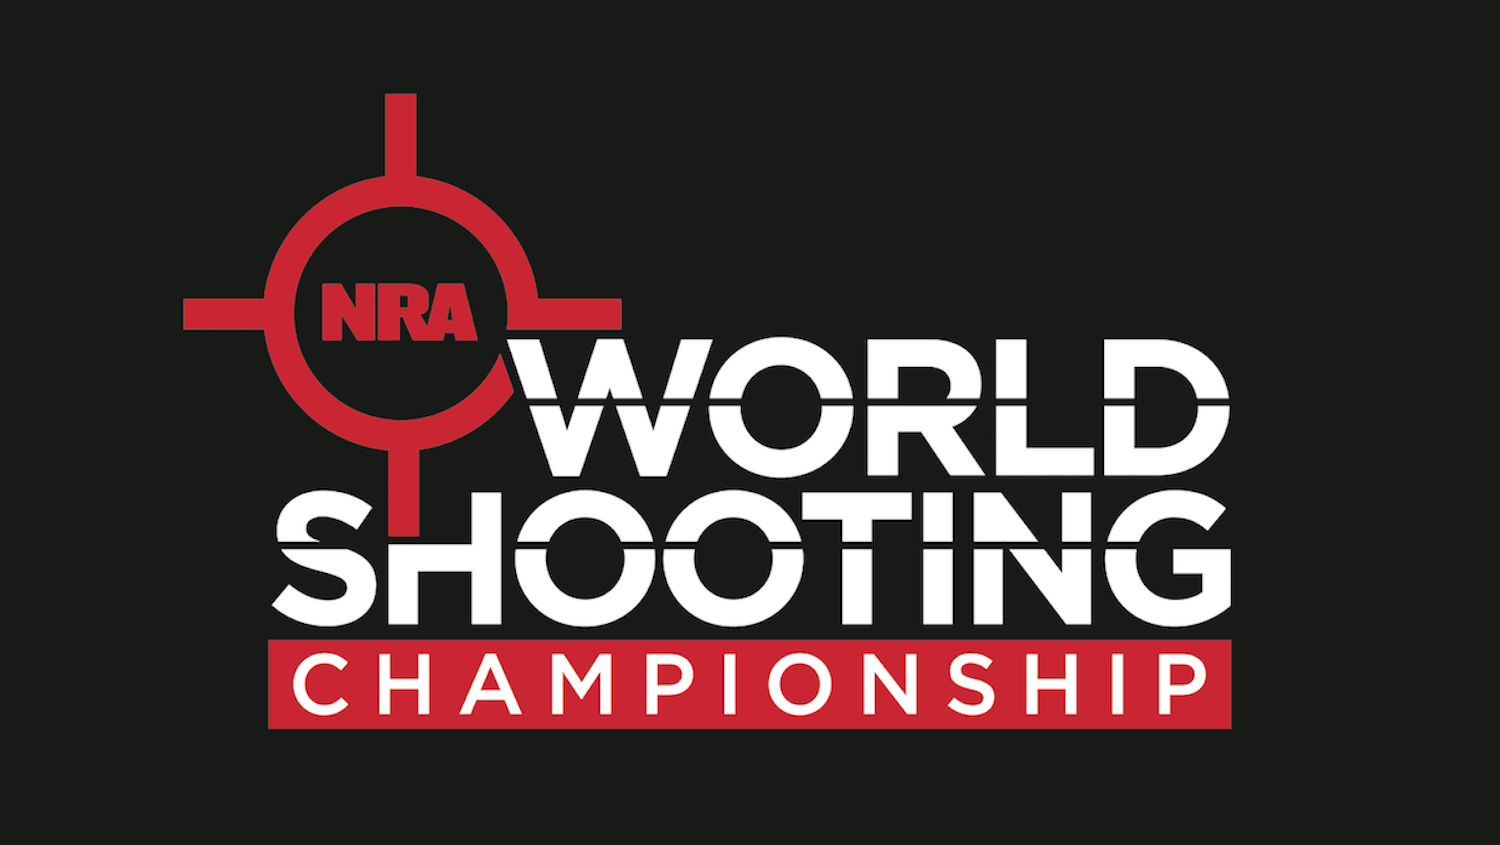 Final Scores From the 2018 NRA World Shooting Championship Presented by Kimber